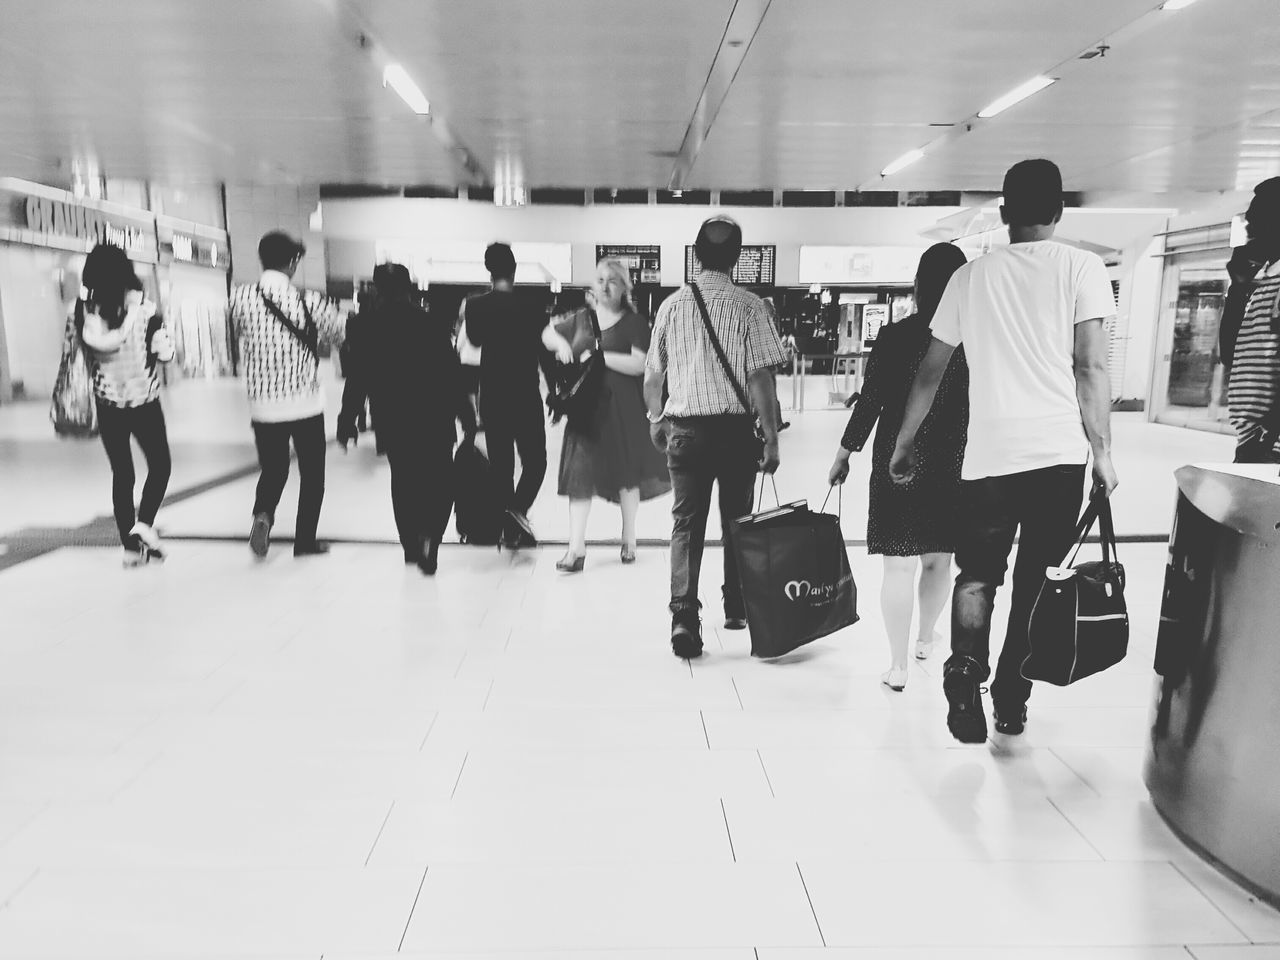 real people, indoors, men, women, walking, full length, large group of people, lifestyles, leisure activity, motion, luggage, illuminated, crowd, day, adult, people